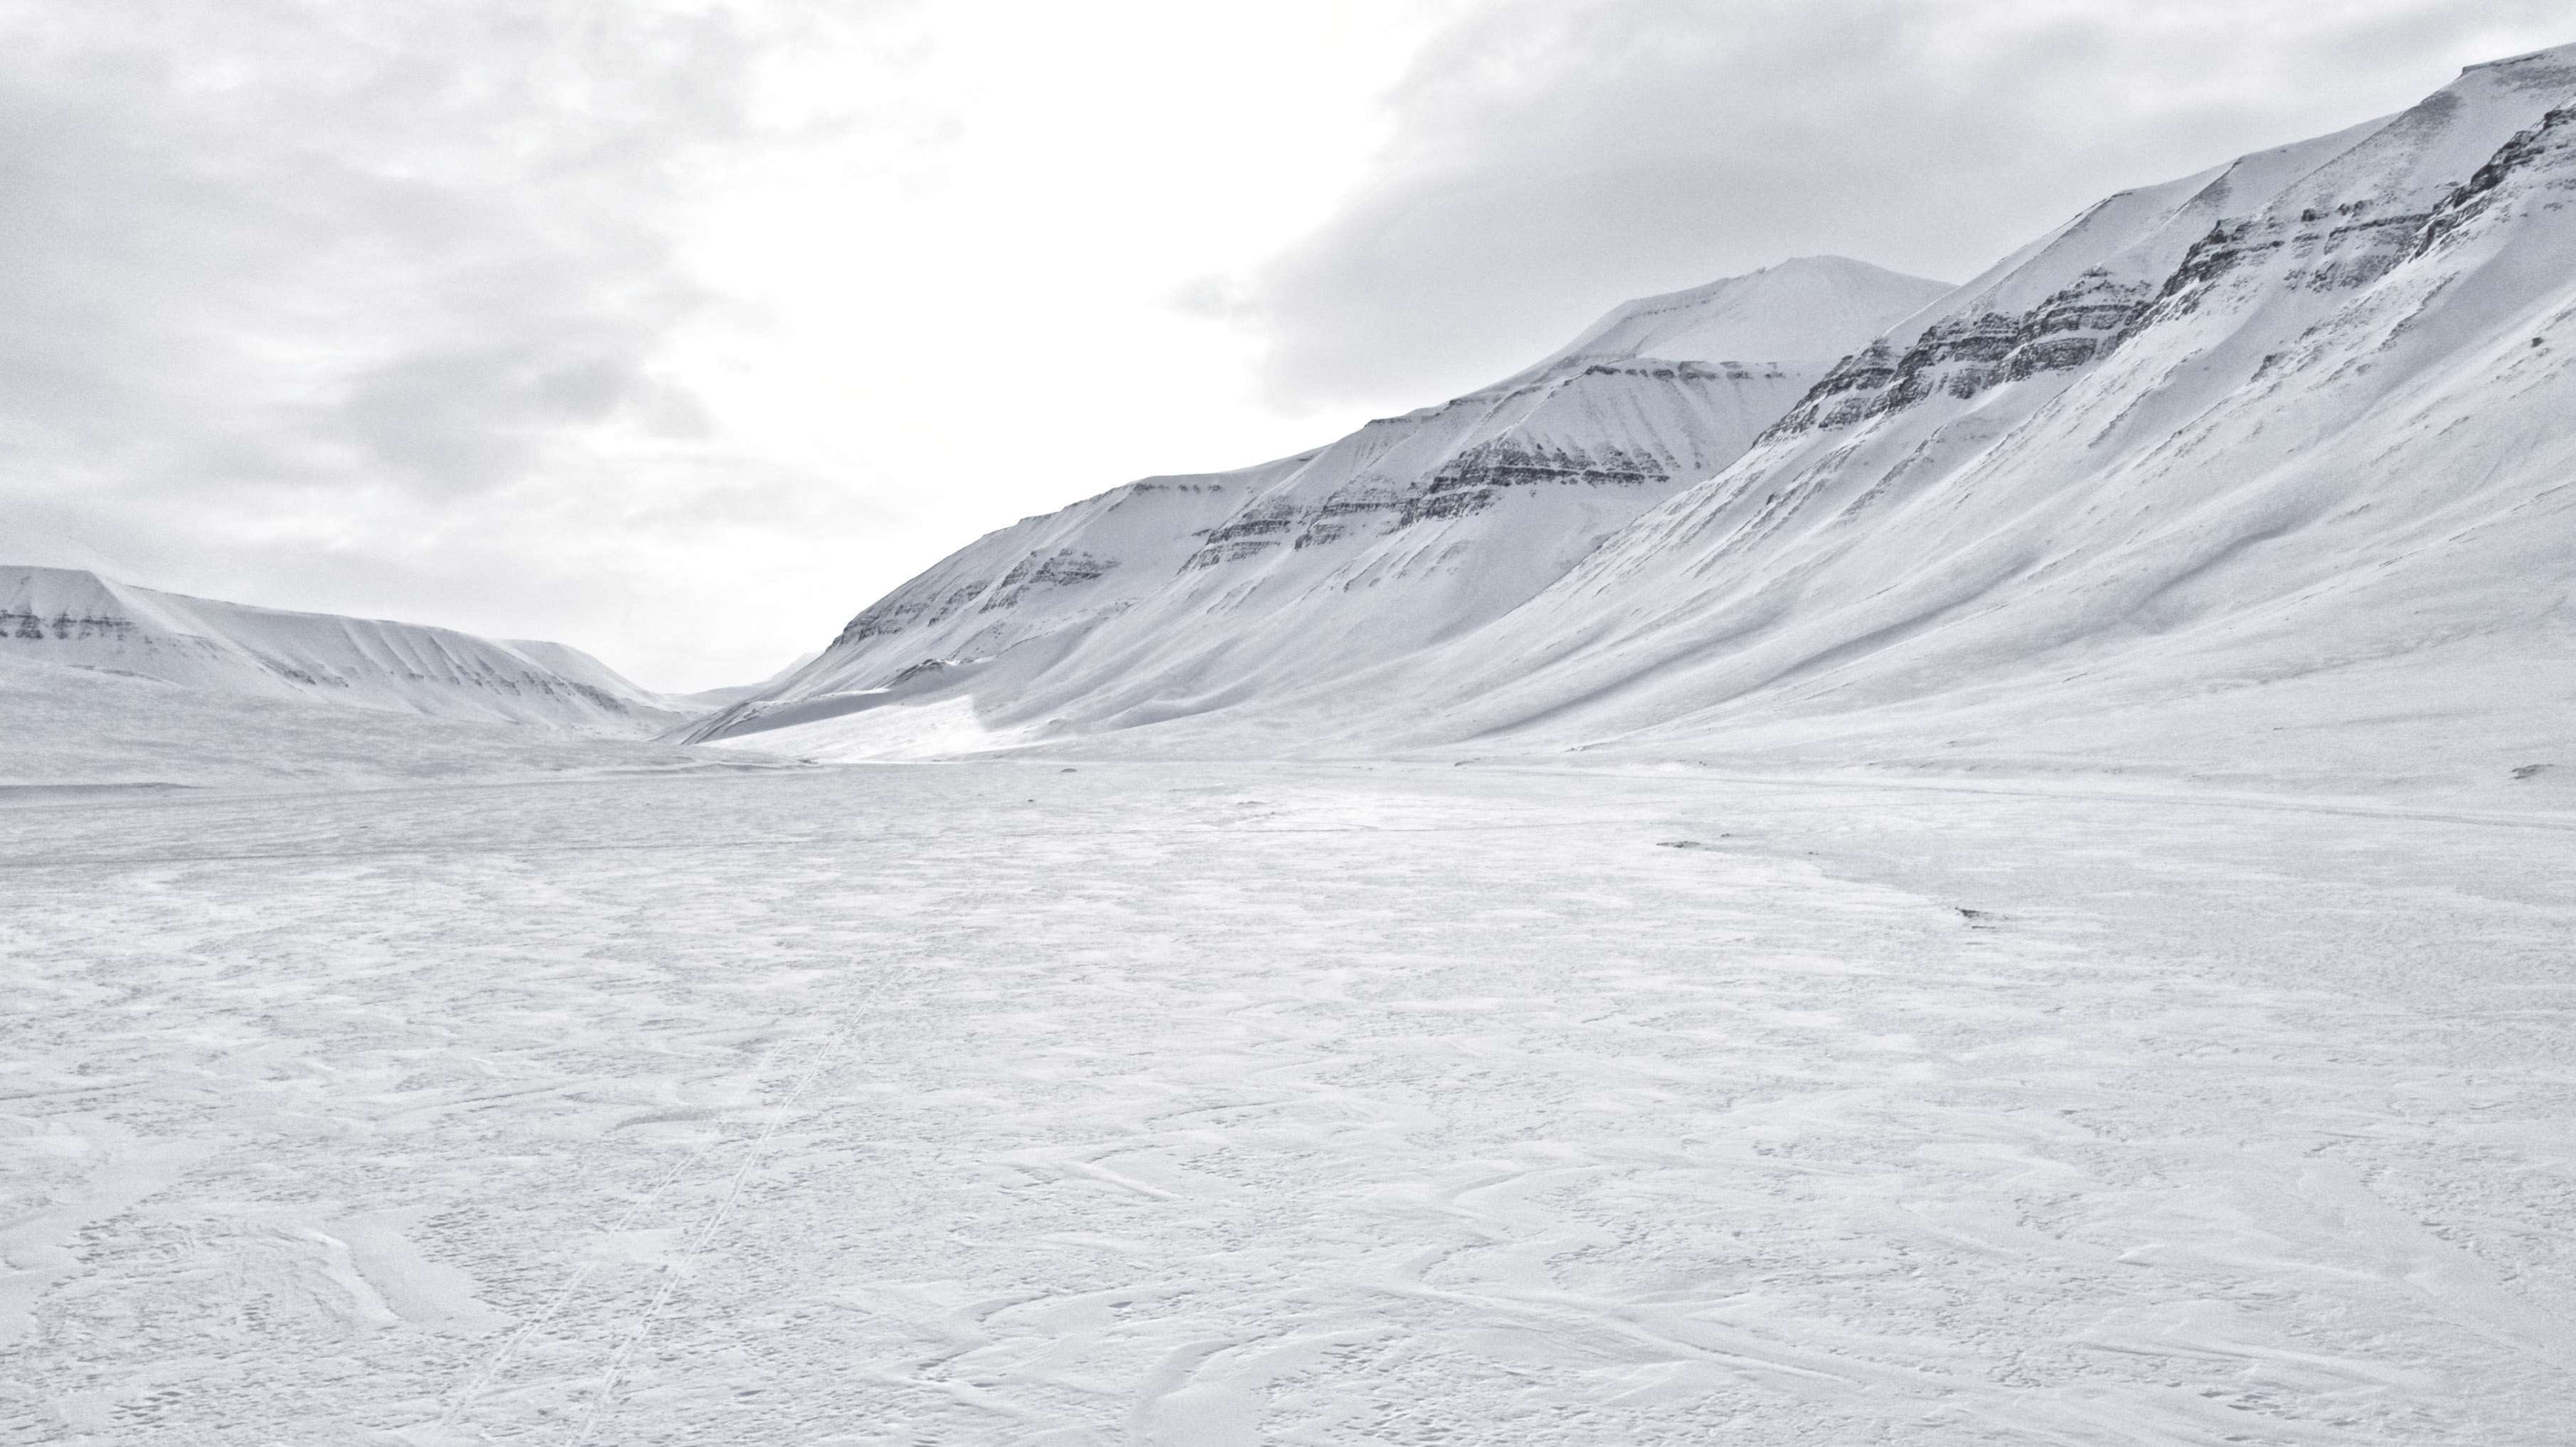 Icy and frozen Svalbard landscape